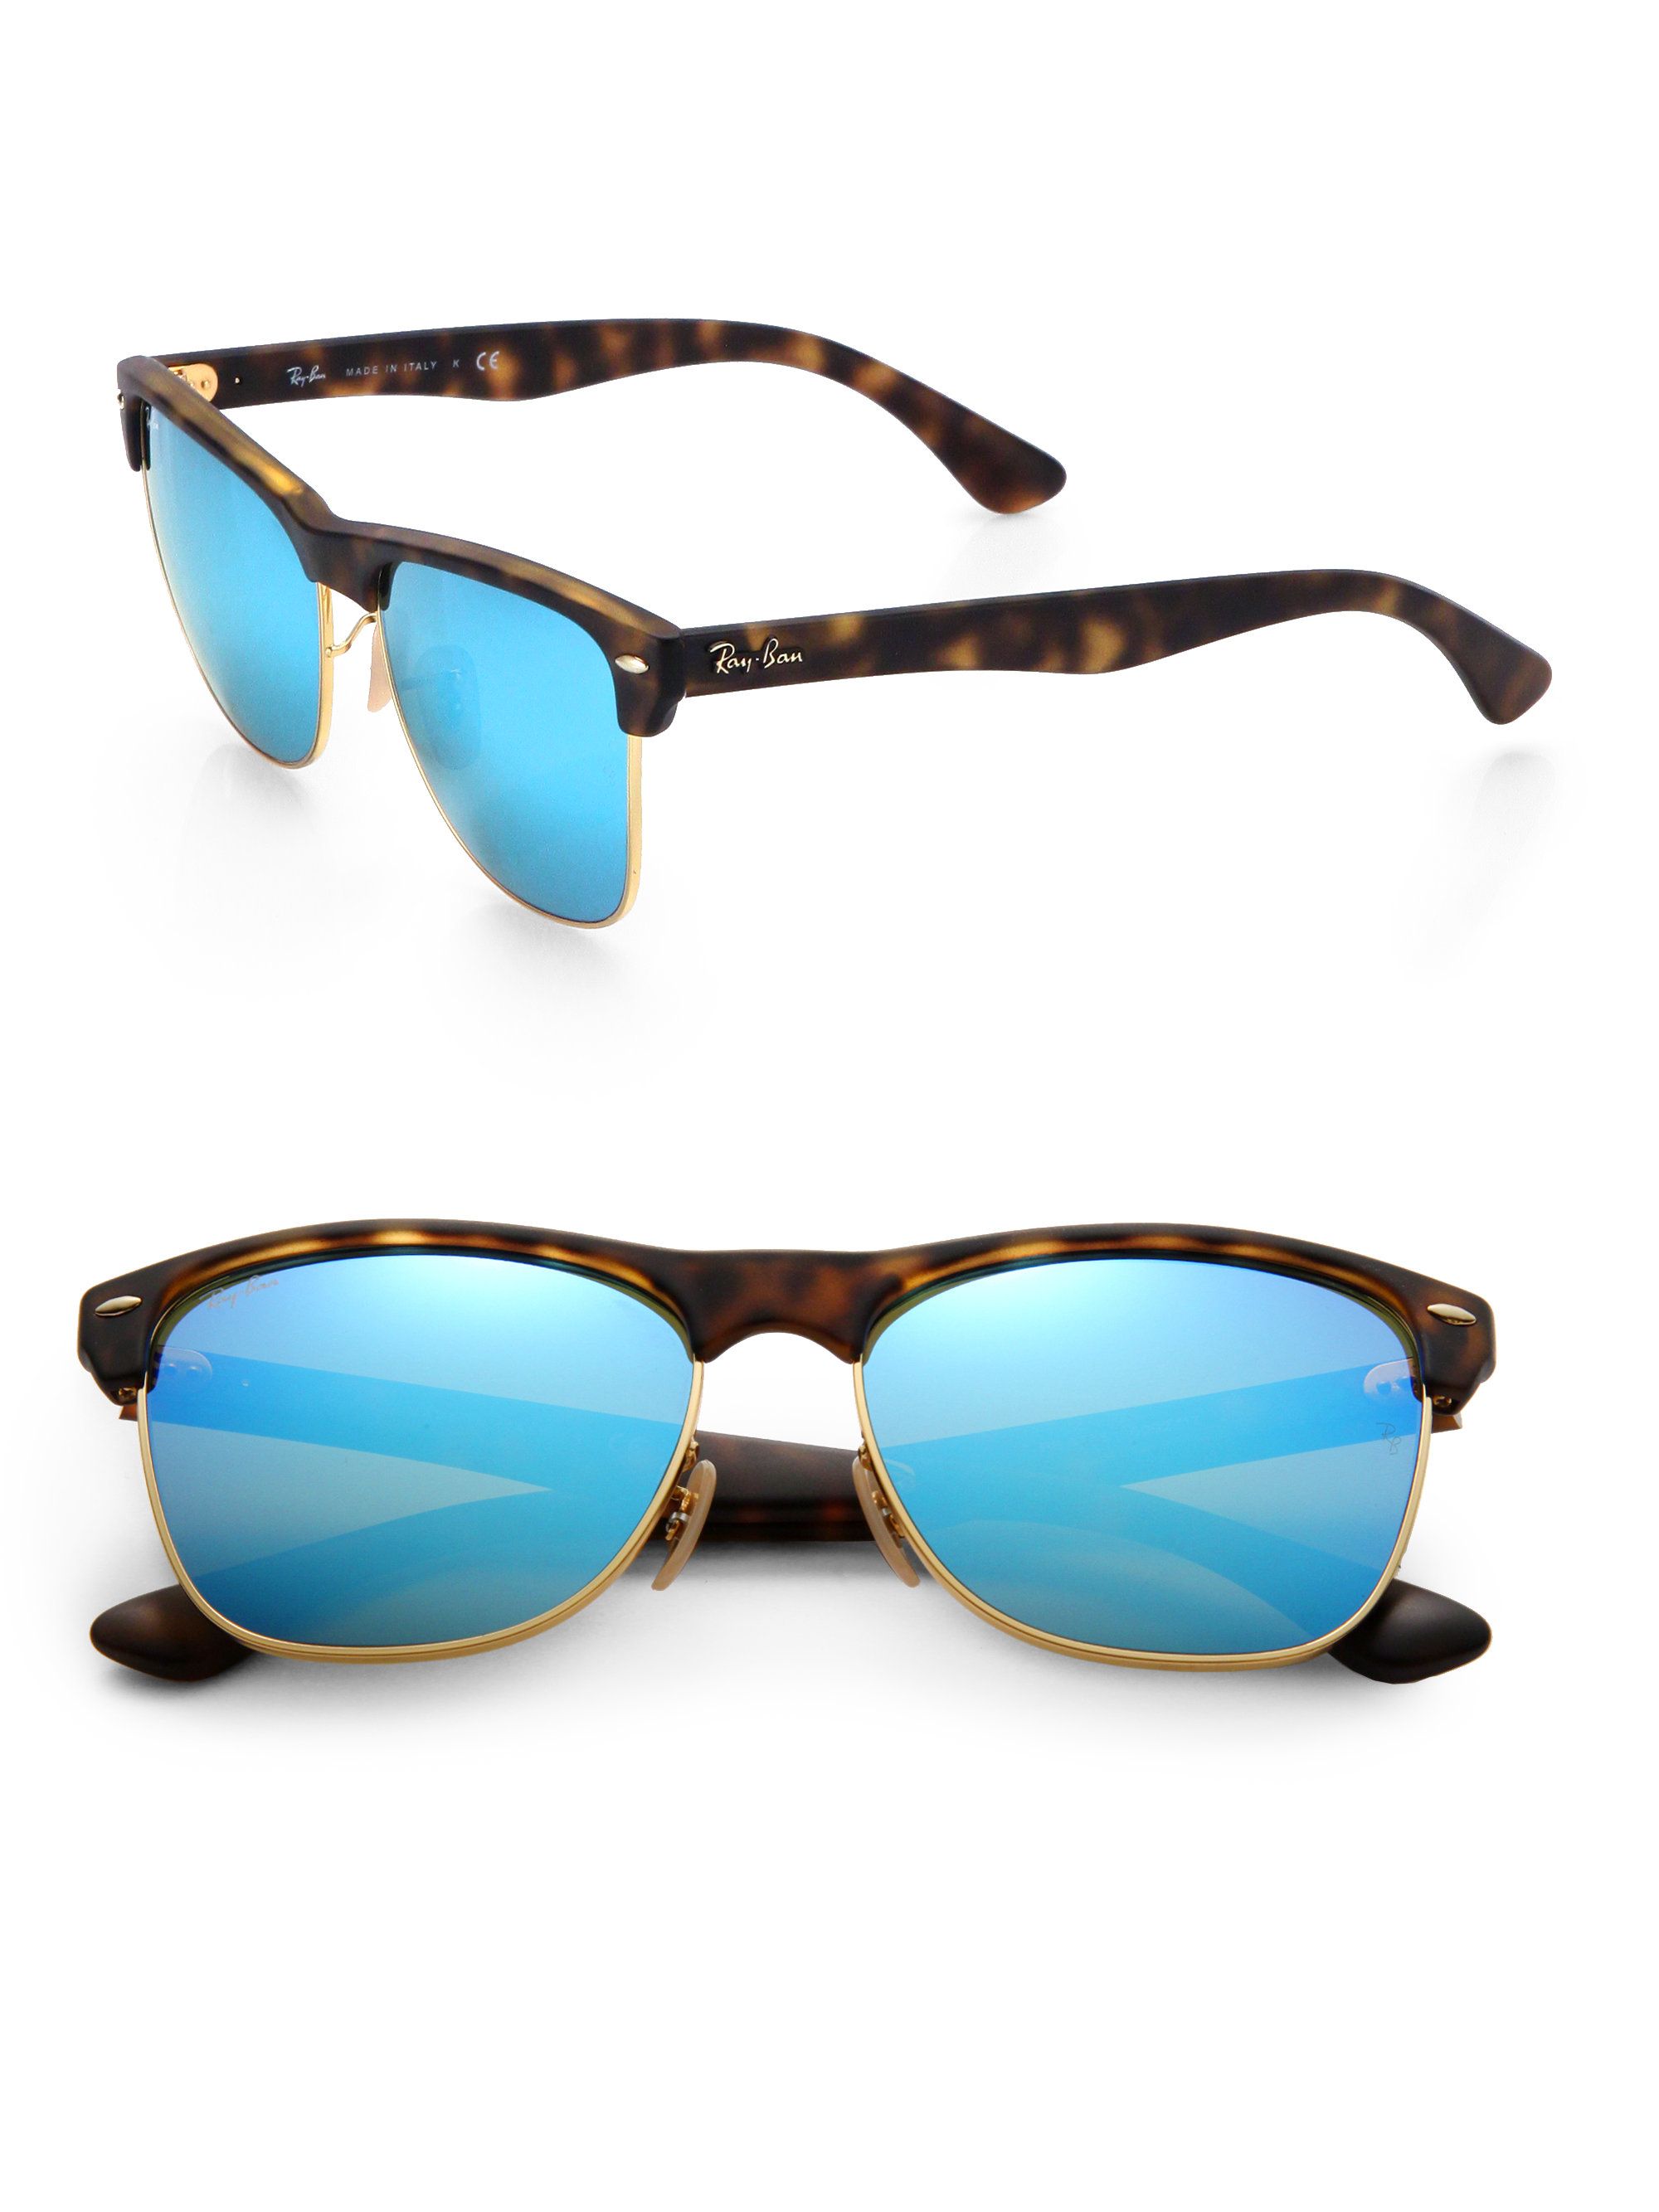 Ray Ban Glasses Frames Blue : Ray-ban Clubmaster Mirrored Lens Sunglasses in Blue for ...